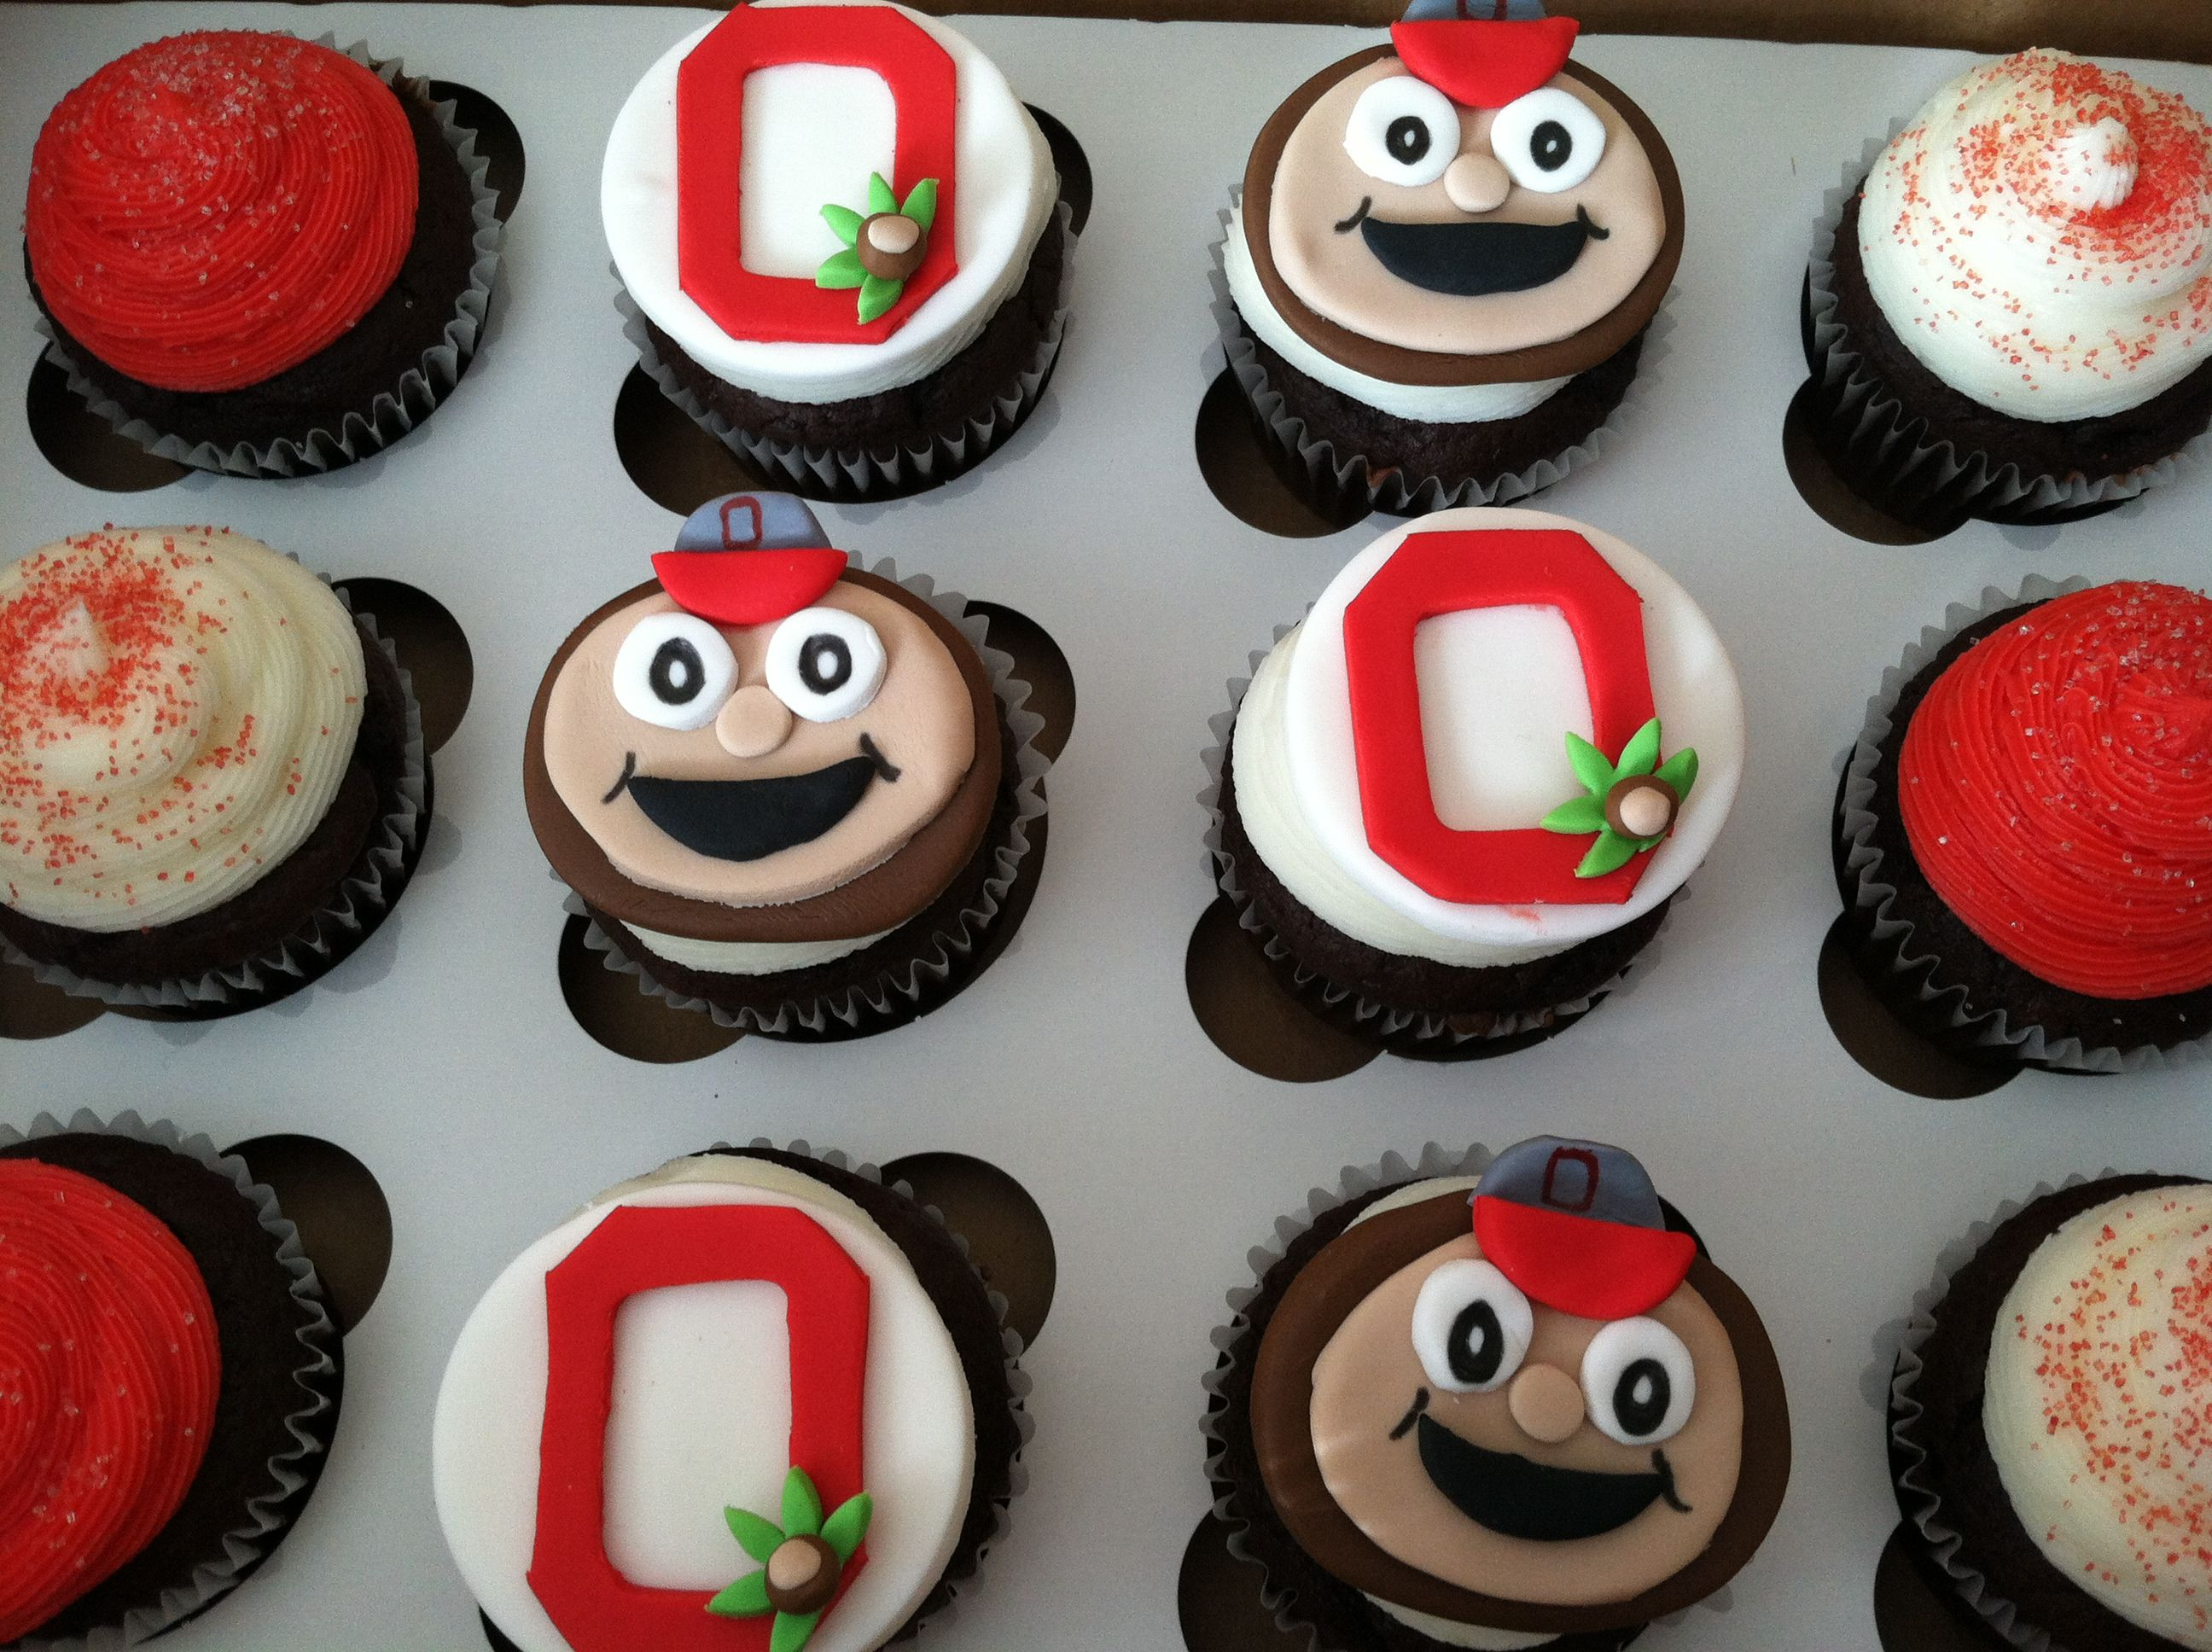 Osu Fondant Topped Cupcakes Sports Themed Cakes Cupcake